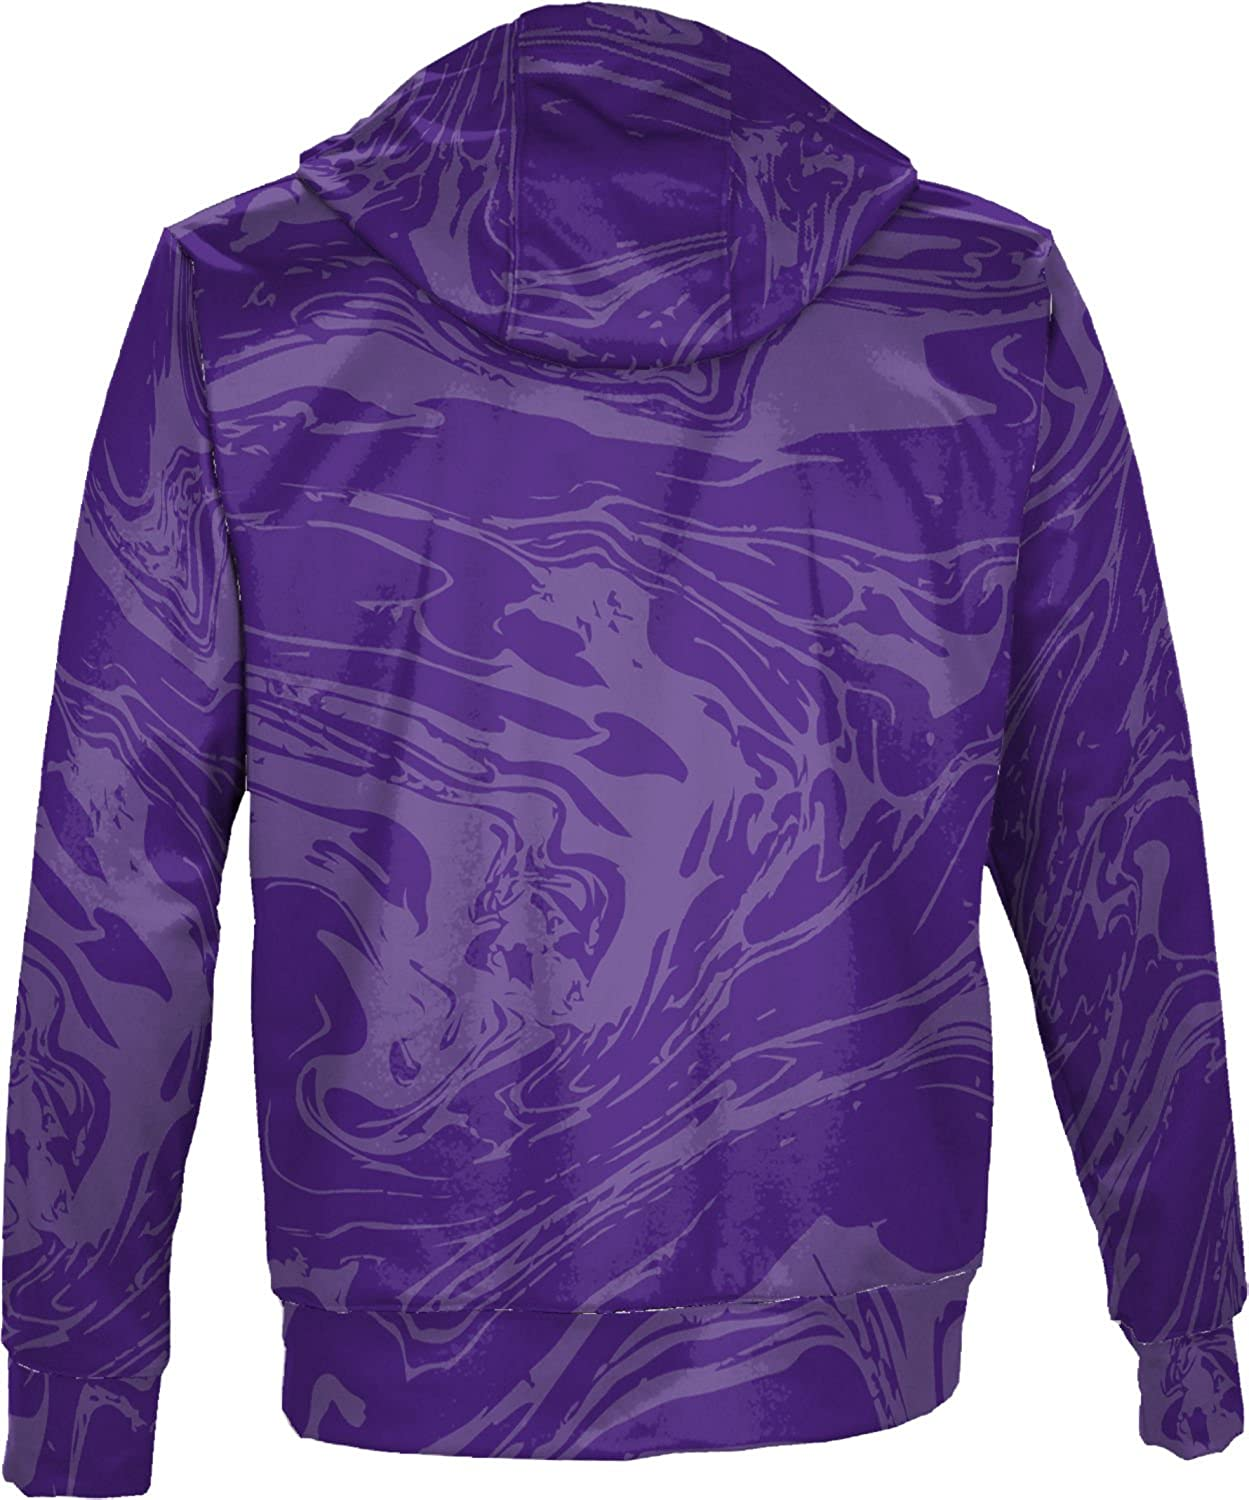 University of Wisconsin-Whitewater College Boys Pullover Hoodie Ripple